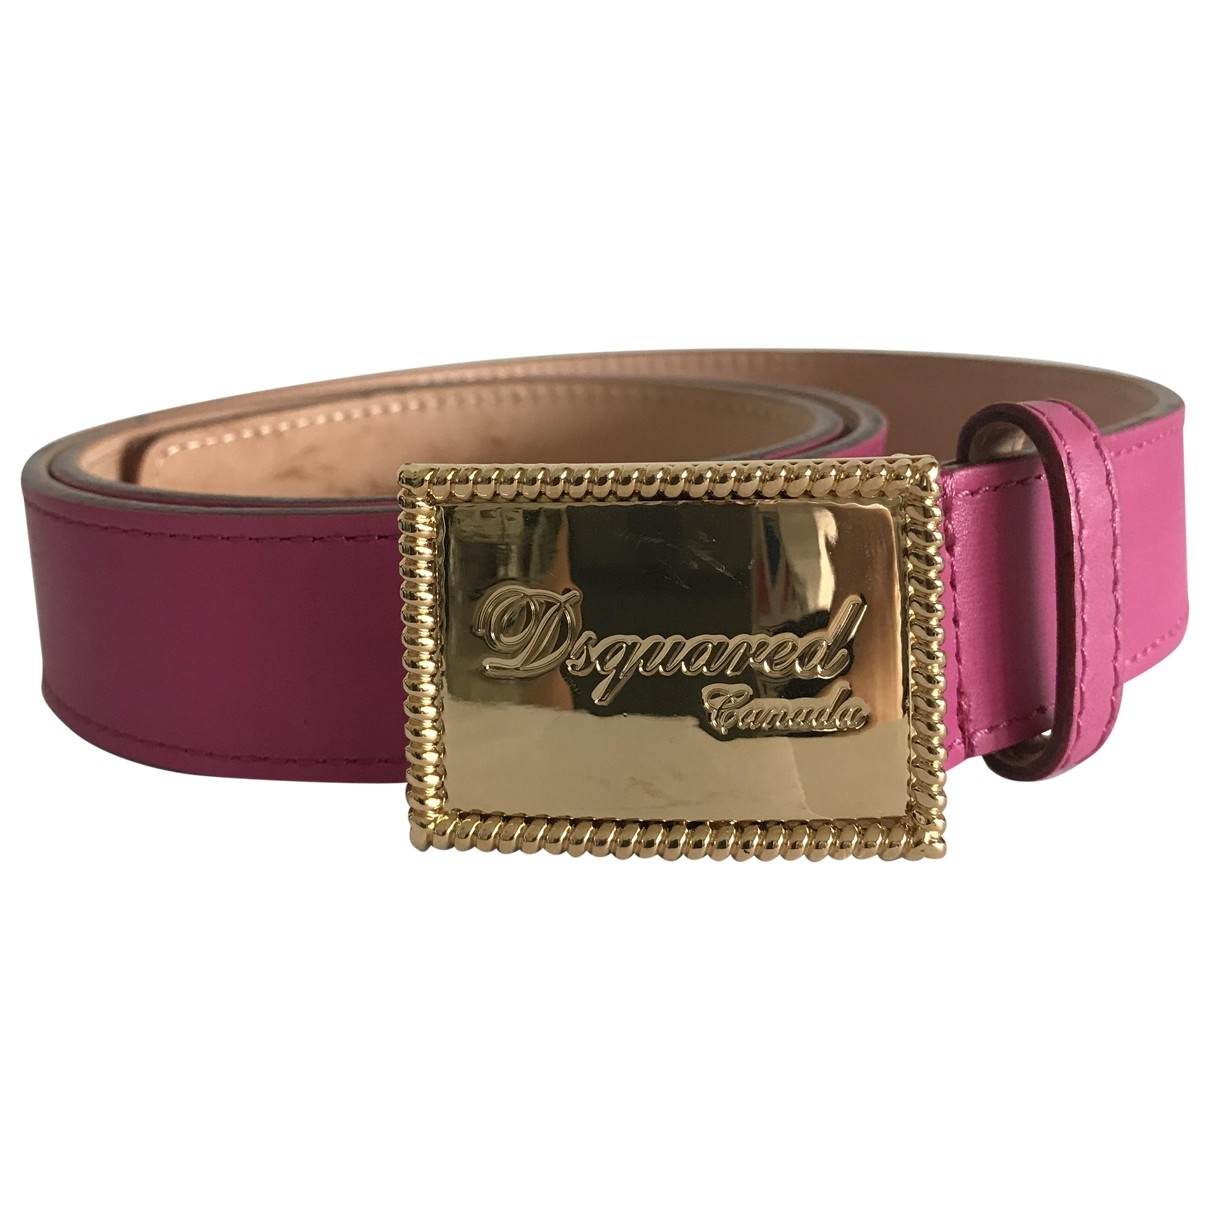 Dsquared2 \N Pink Leather belt for Women 75 cm